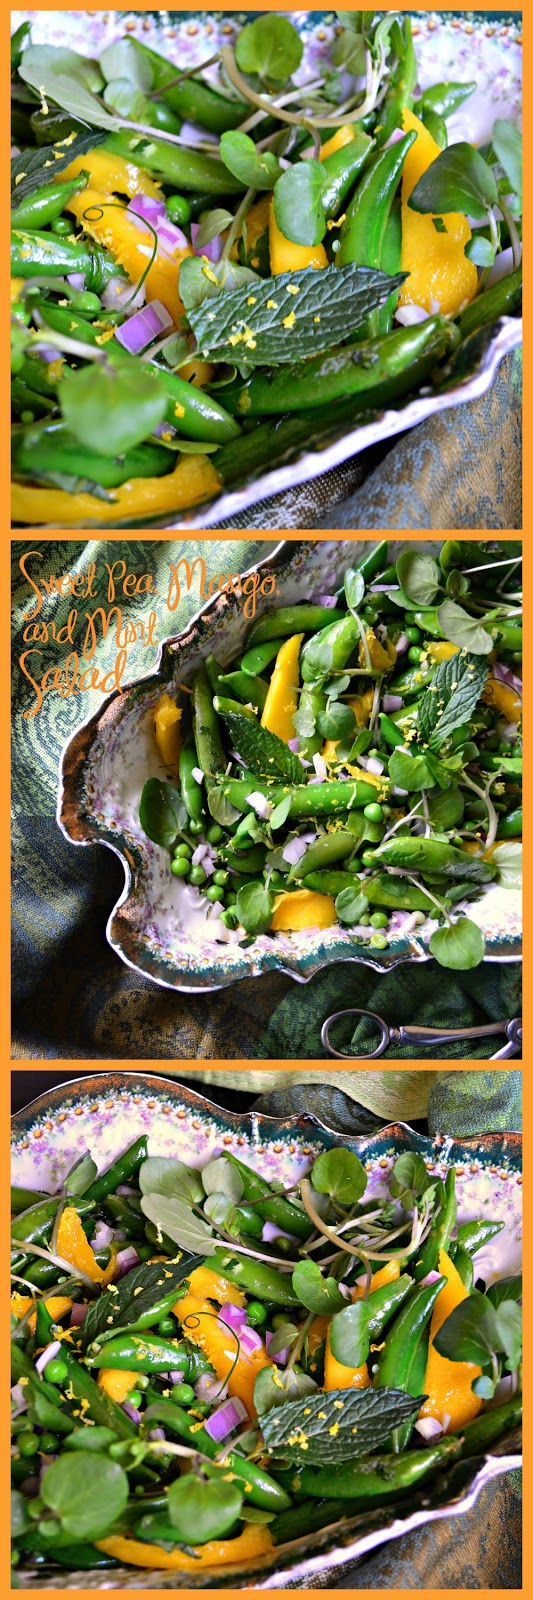 This sweet pea, mango and mint salad screams spring! Topped with a maple lemon vinaigrette this is not only pretty it is delicious! #salad #mango#peas www.thisishowicook.com